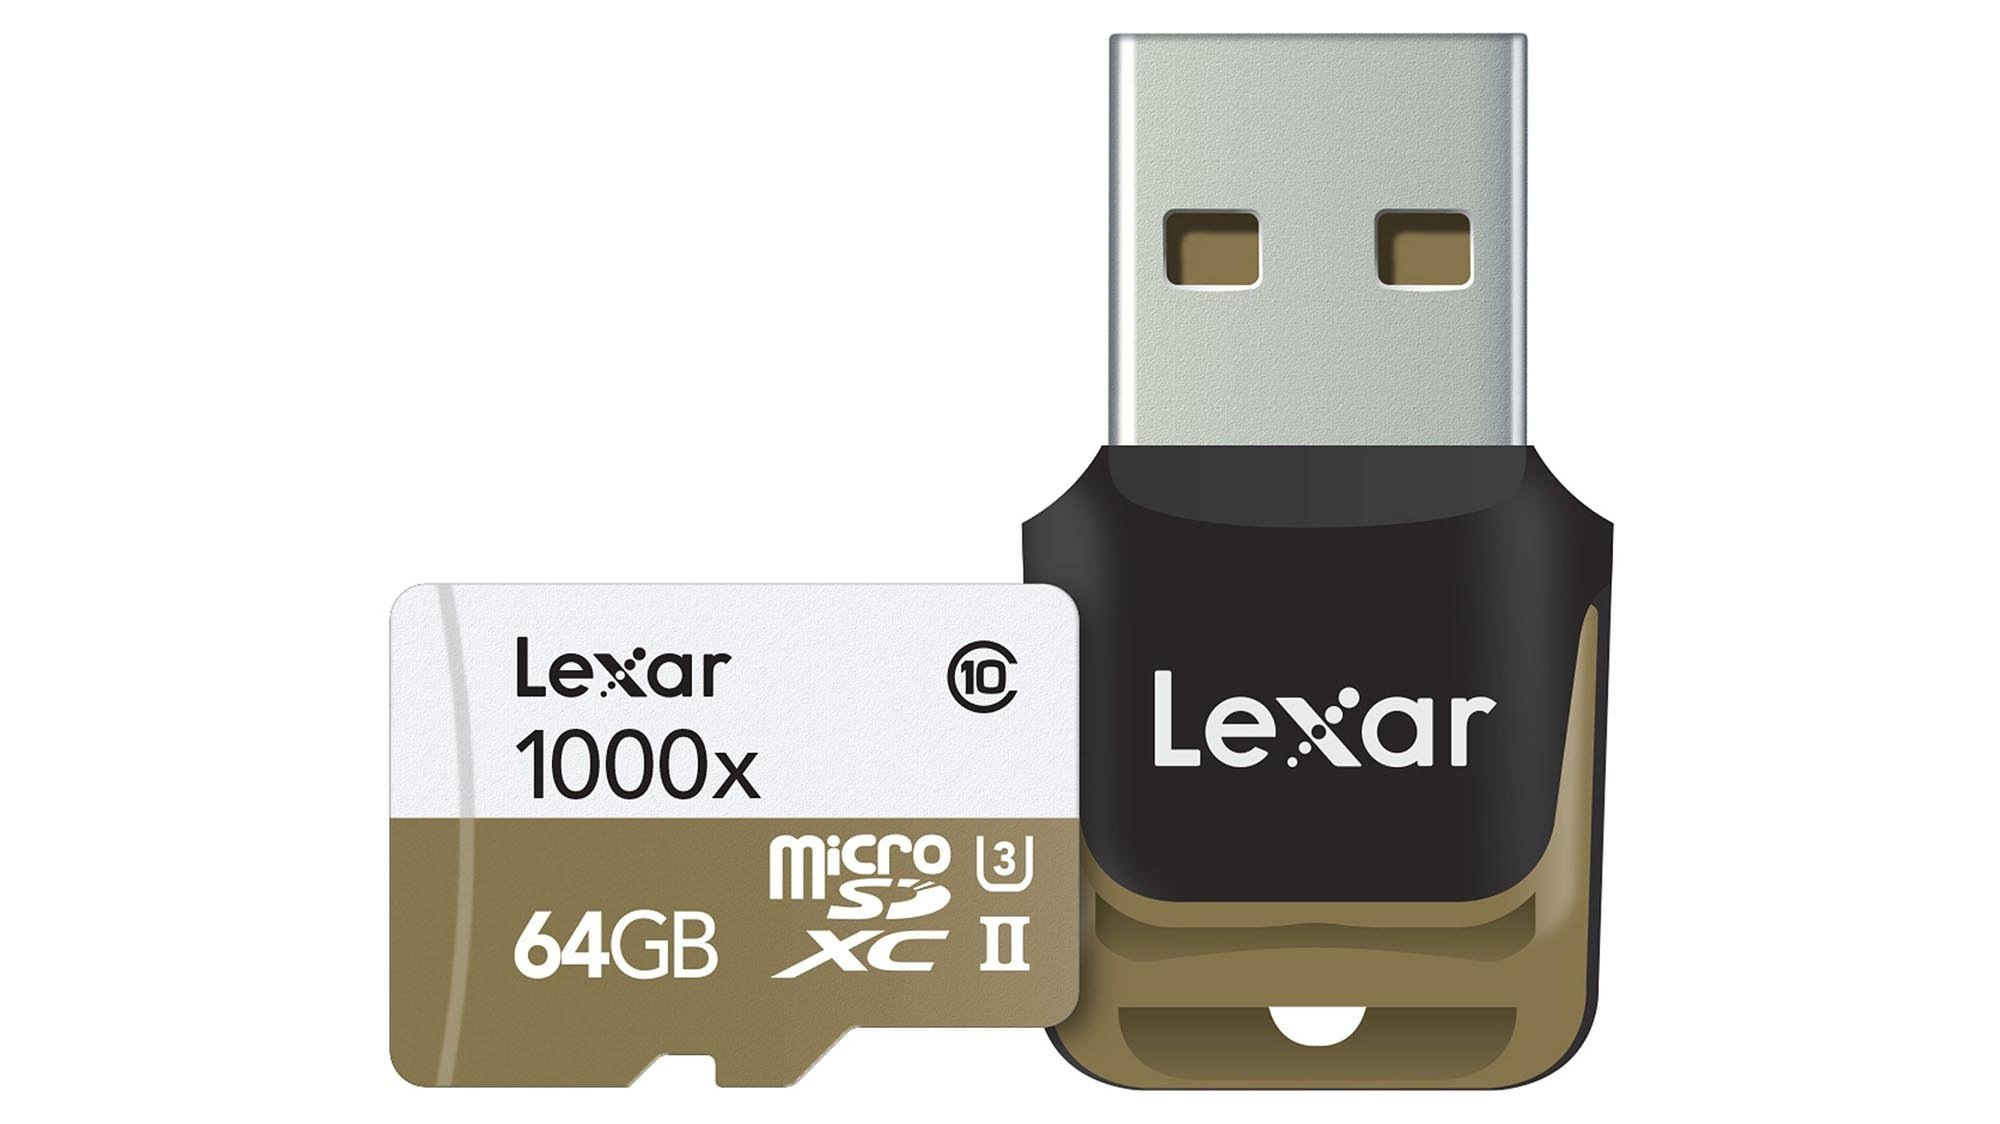 64 Gb Micro Sd Karte.Best Microsd Card Expand Your Storage With The Best Microsd Cards